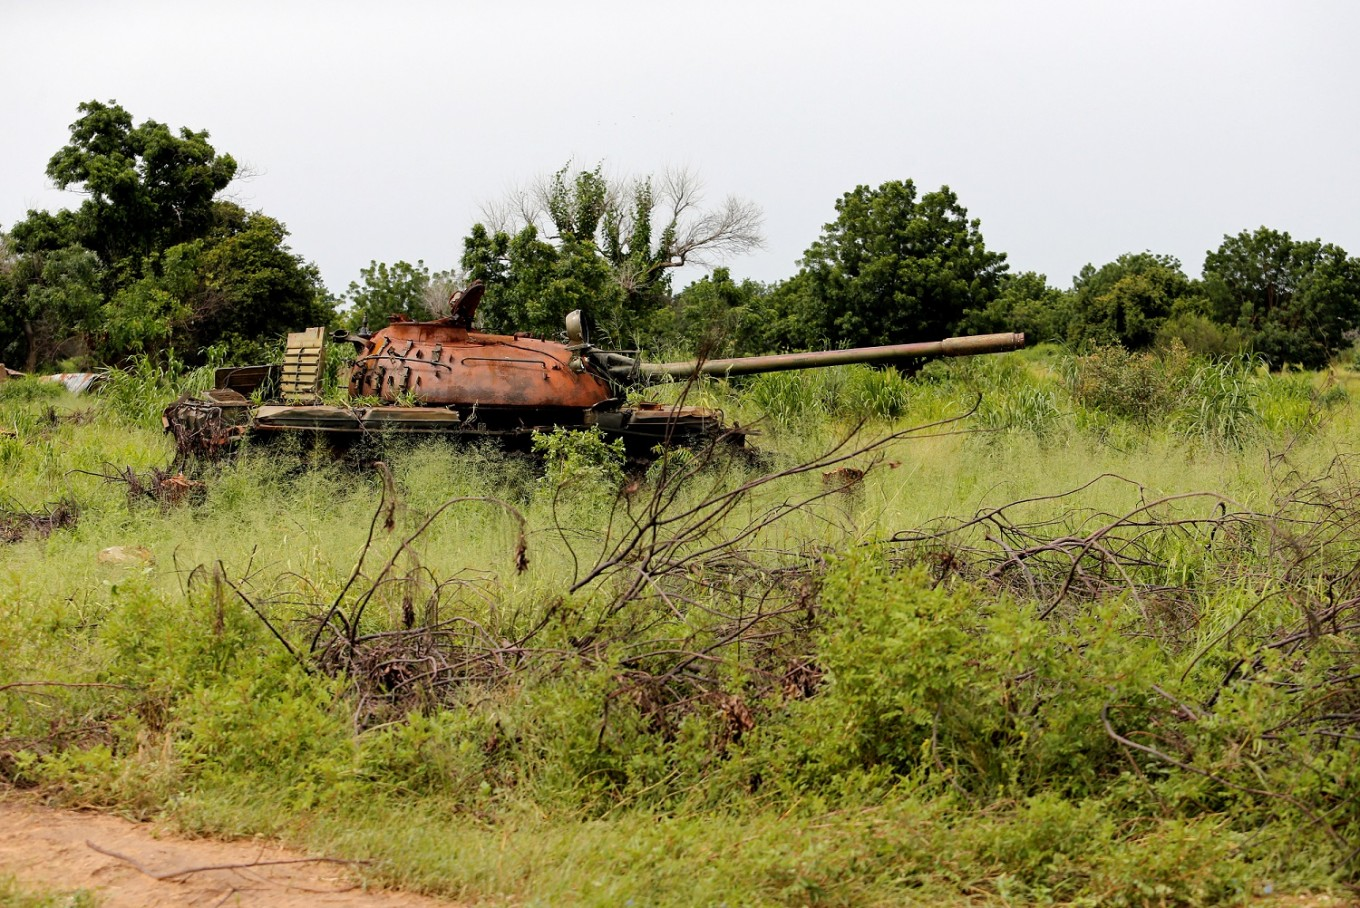 Nigeria's army wants to make Boko Haram's forest stronghold a tourism spot